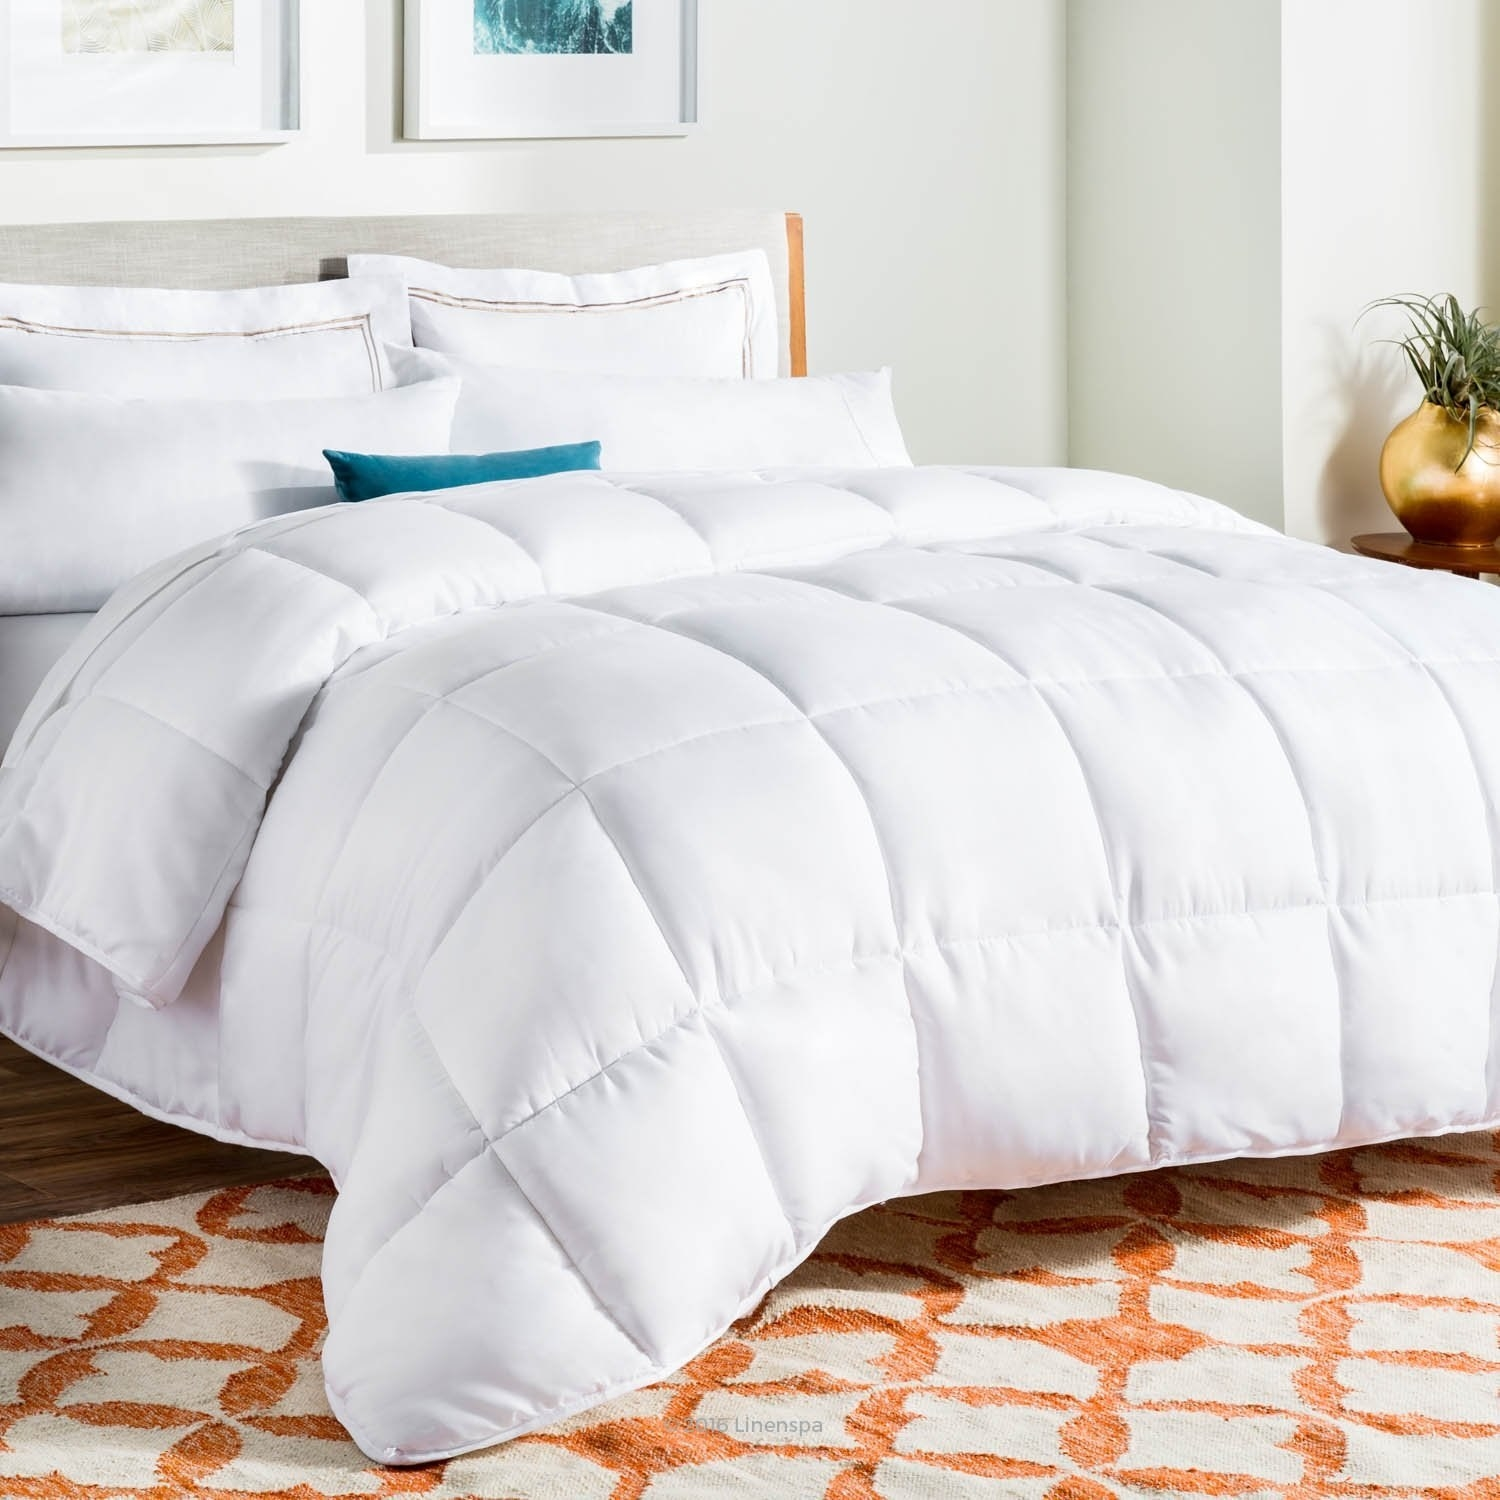 The comforter in white on a bed